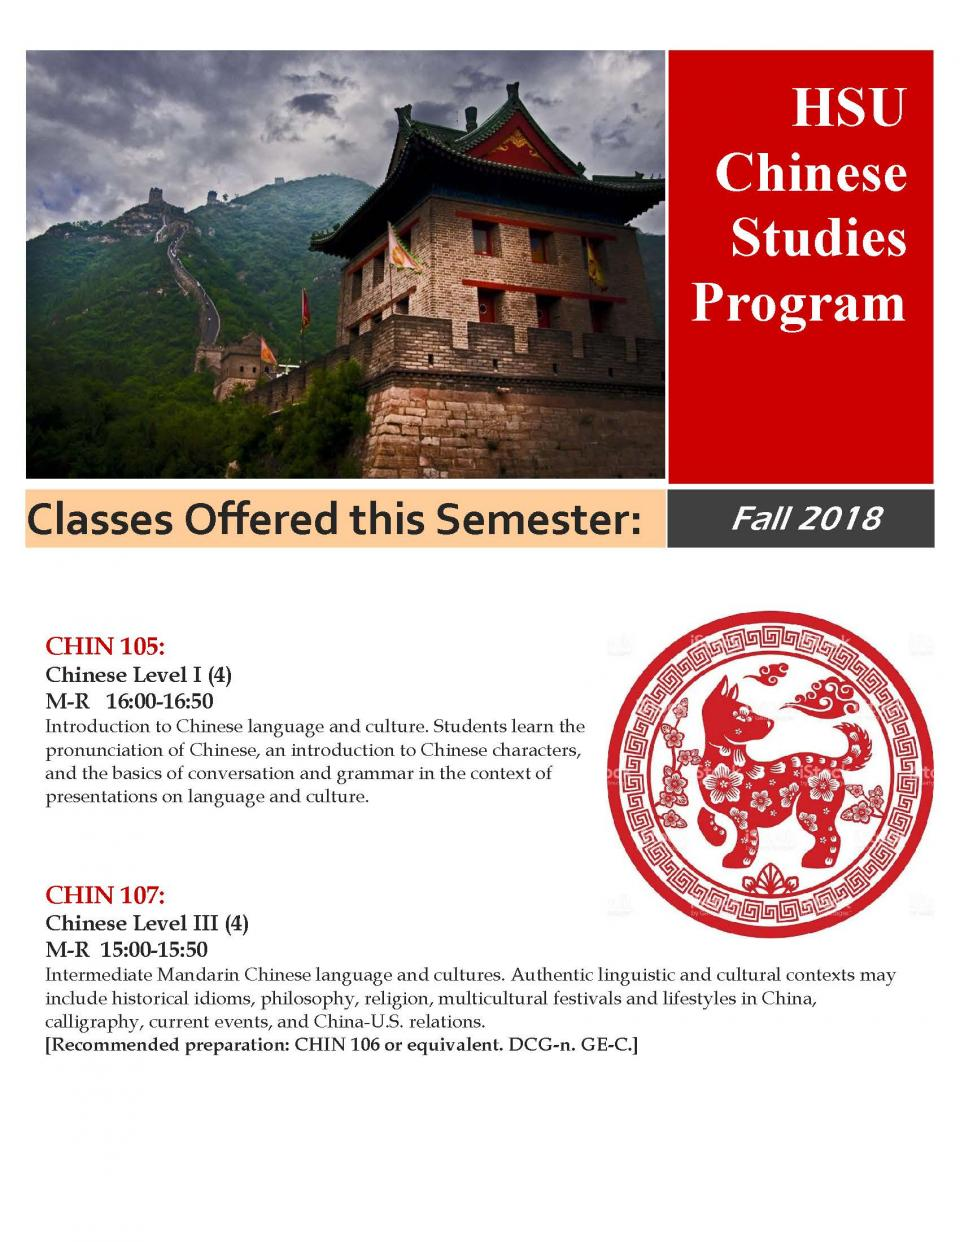 Chinese studies classes Fall 2018